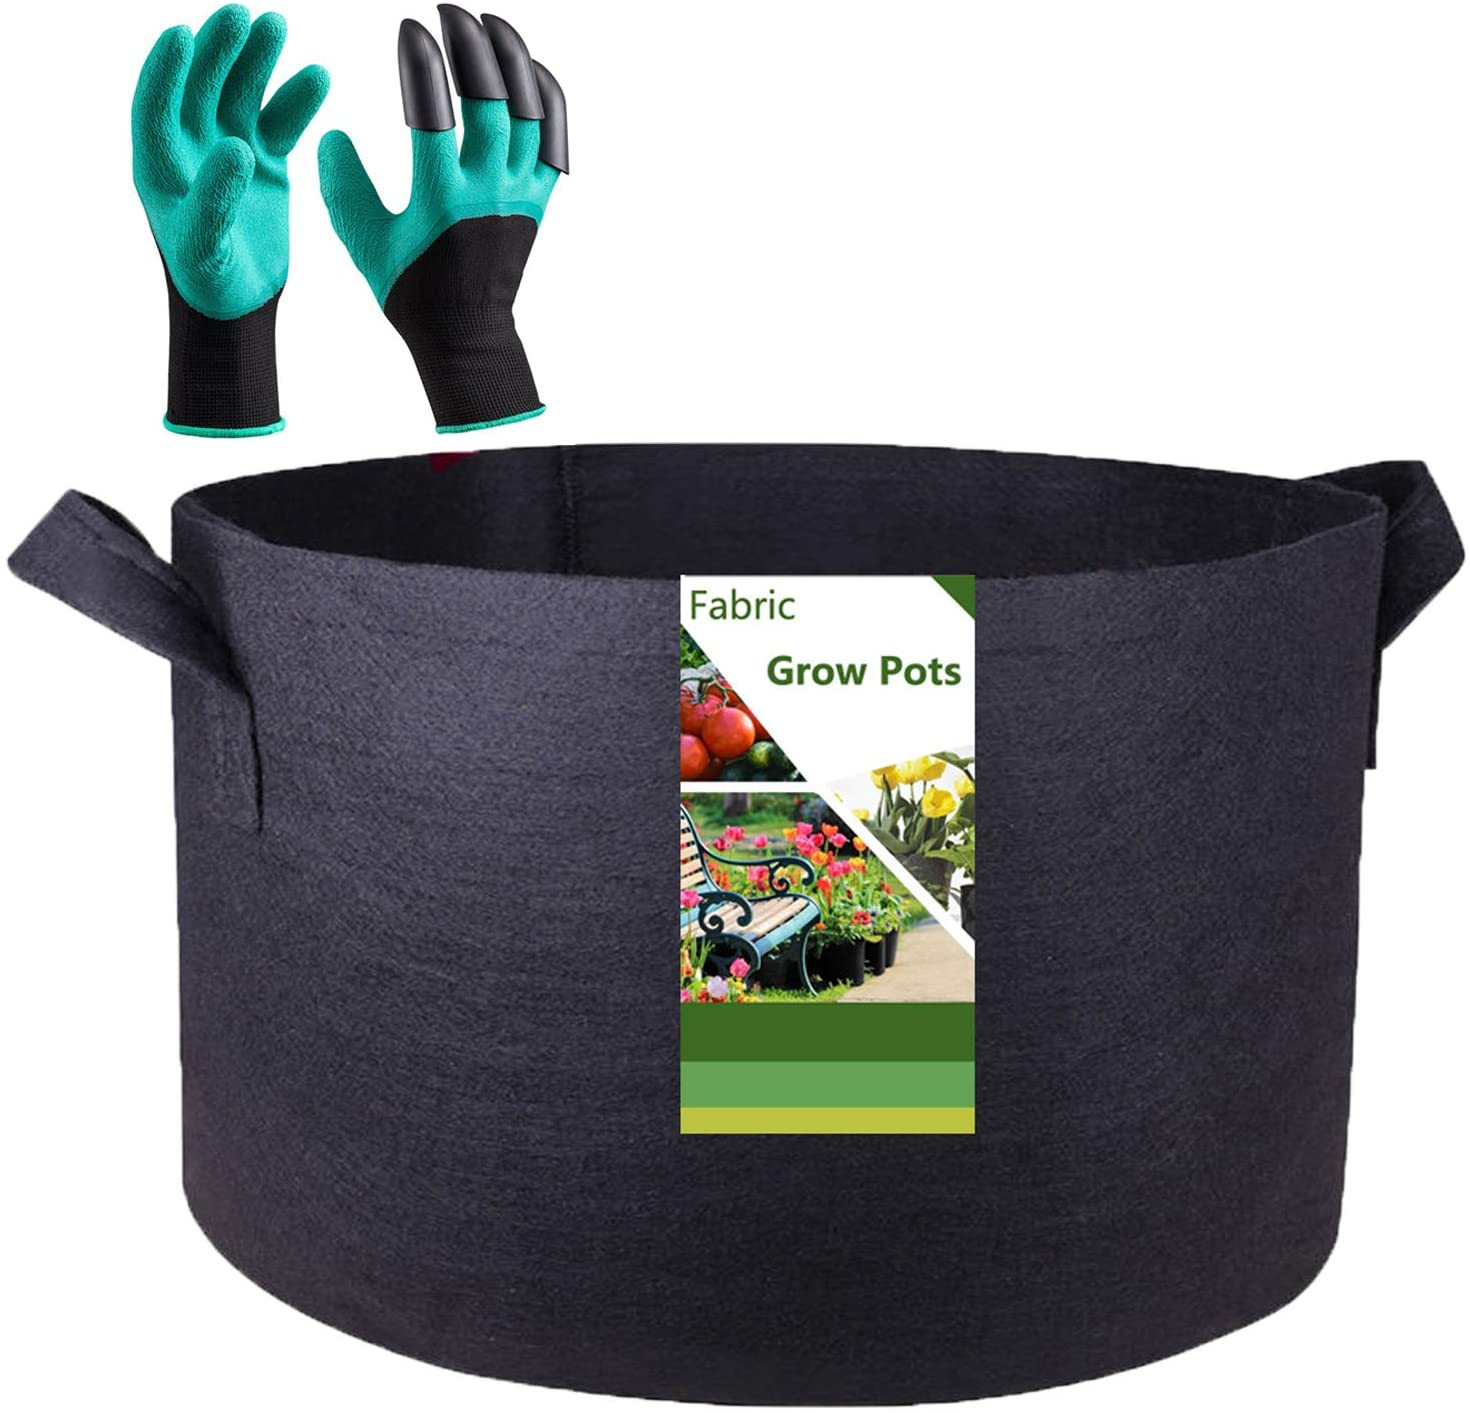 Tespher Professional 200 Gallon Round Grow Bag Fabric Raised Bed (50x24 inches) with Garden Gloves, Extra Large Root Aeration Container Plant Raised Bed Bag Flower Pot Vegetable Nursery Planter